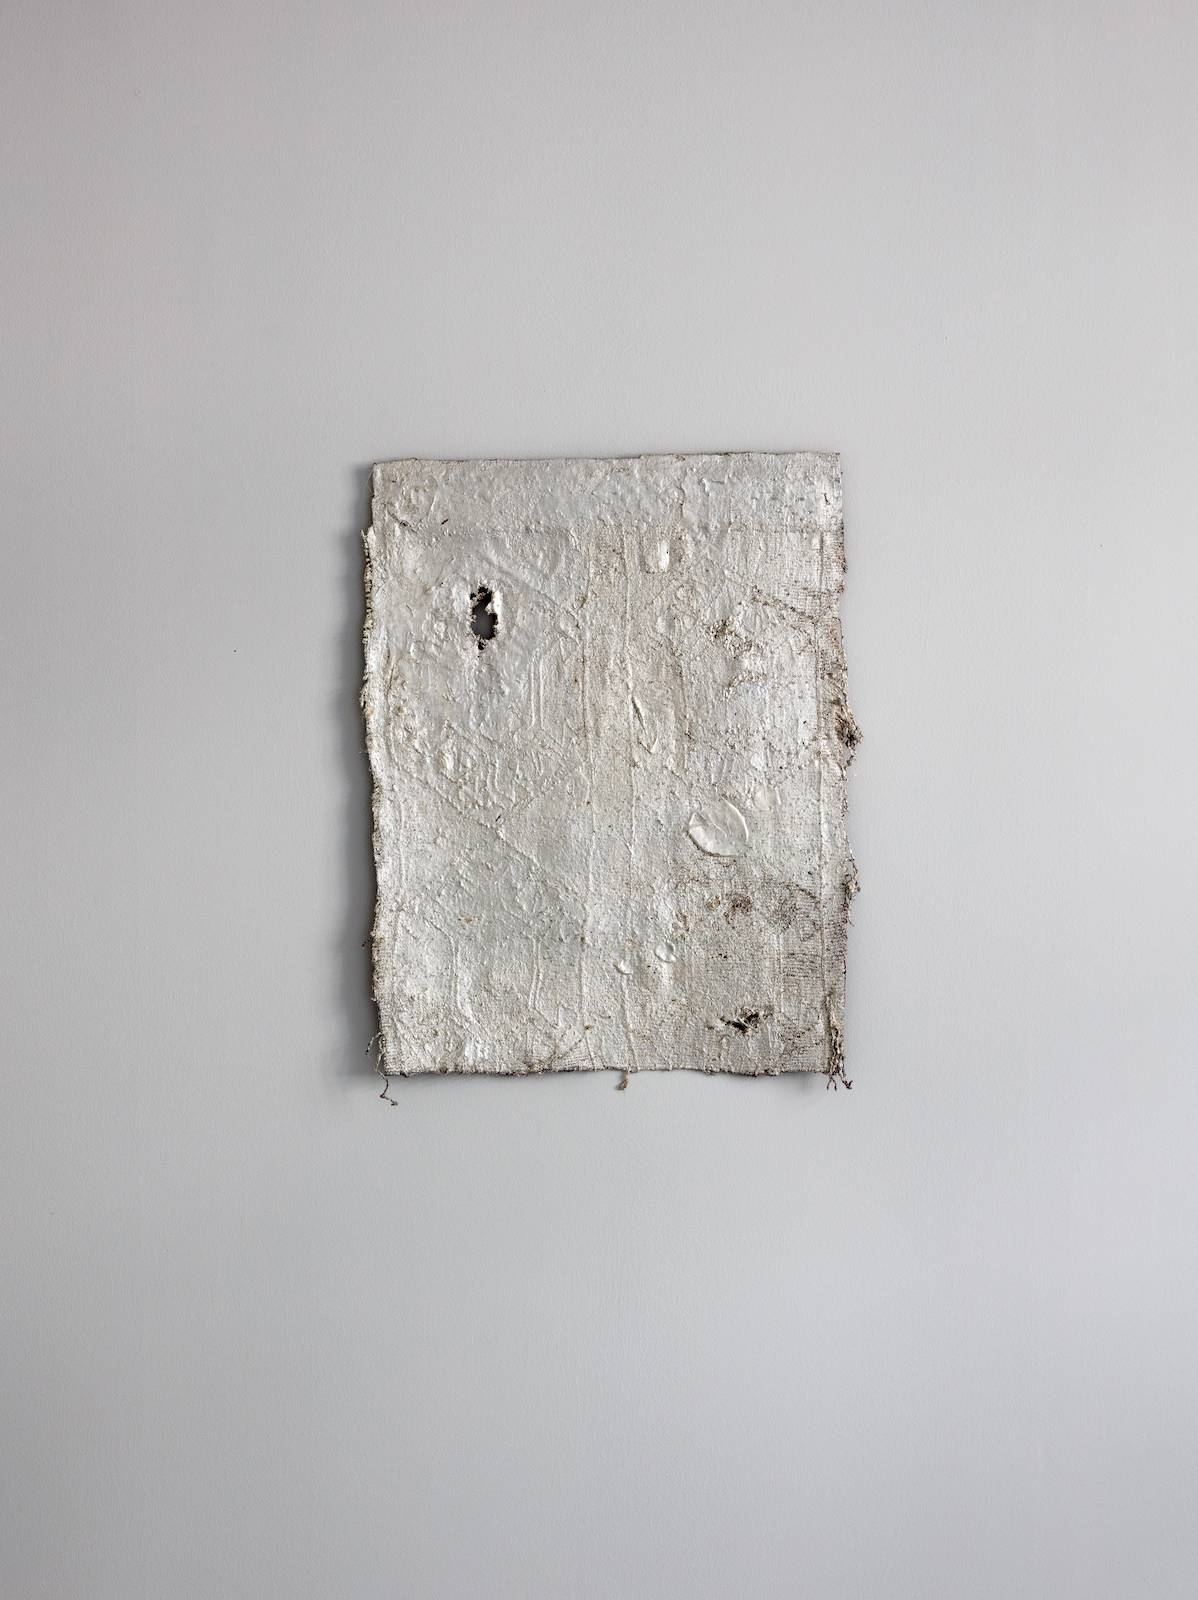 David Tibet (braille dogs hammering out belonging to the sky), 2017, anatolian yastik, rubber, silverleaf, lacquer, 63 x 49 cm